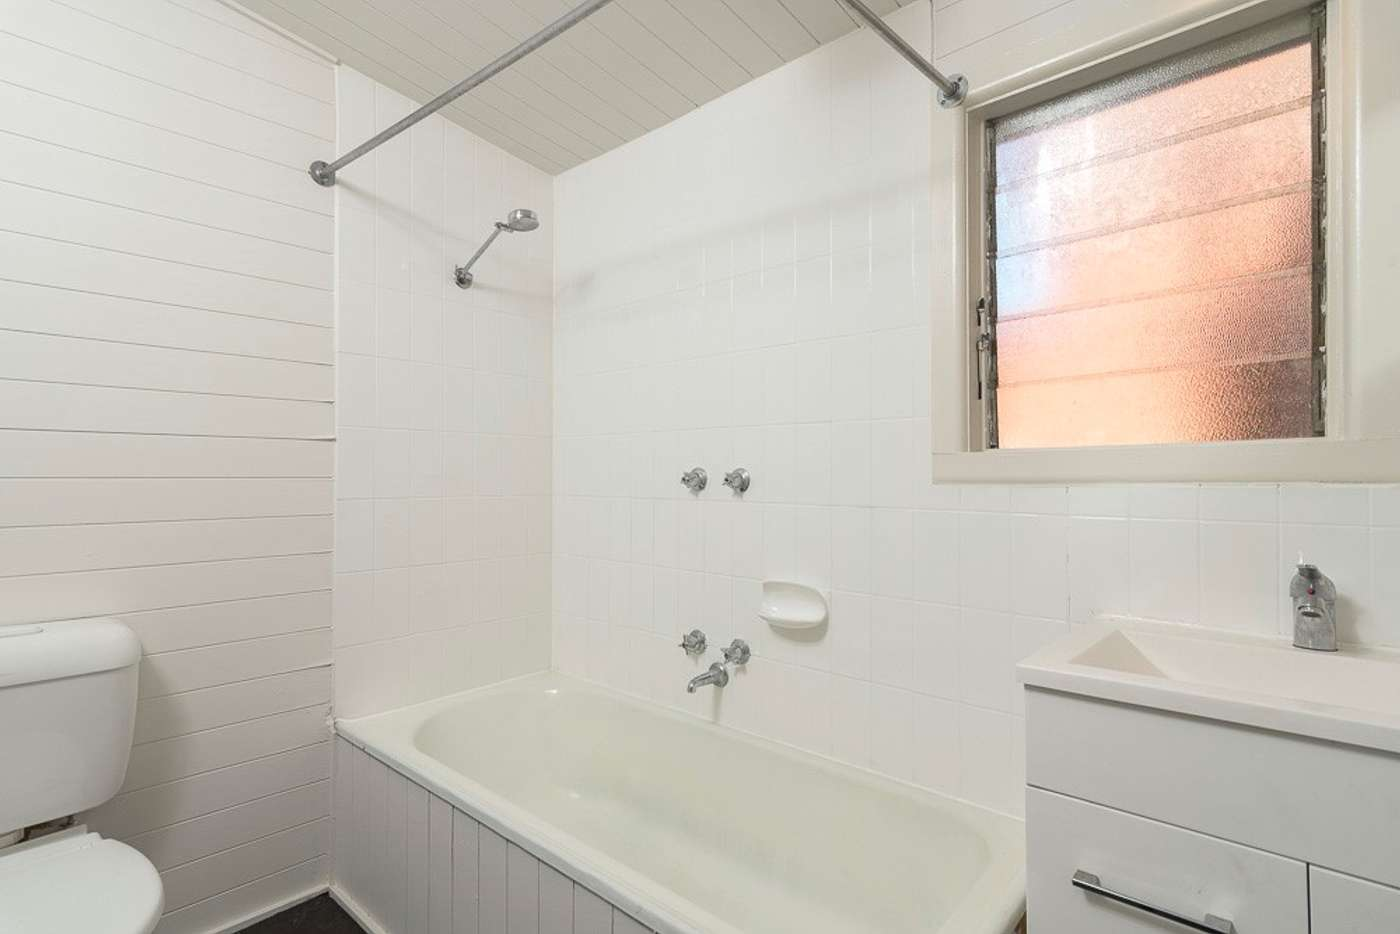 Sixth view of Homely house listing, 786 Lygon Street, Carlton VIC 3053